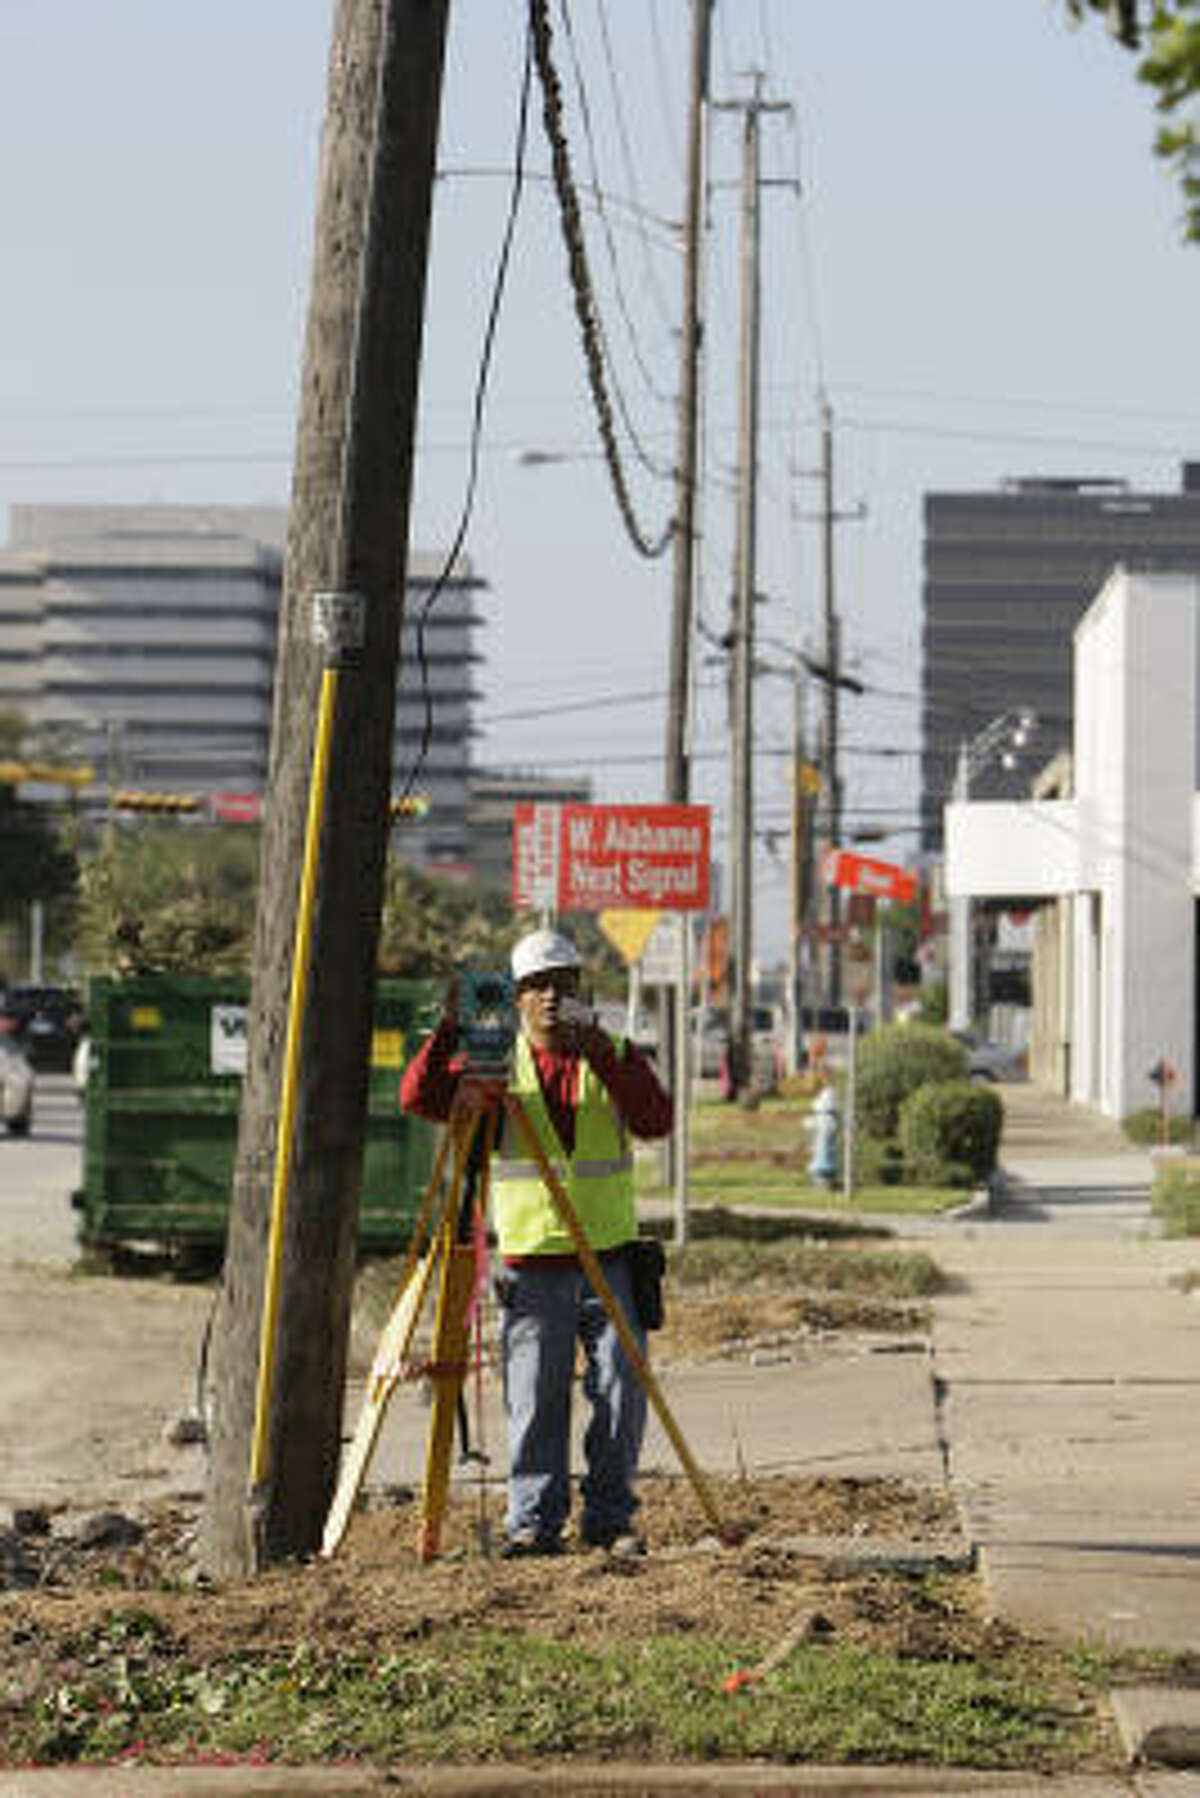 A surveyor works along Kirby near West Alabama where the trees were recently removed on the west side of Kirby between Richmond and Kipling Tuesday, July 29, 2008, in Houston. ( Melissa Phillip / Chronicle )